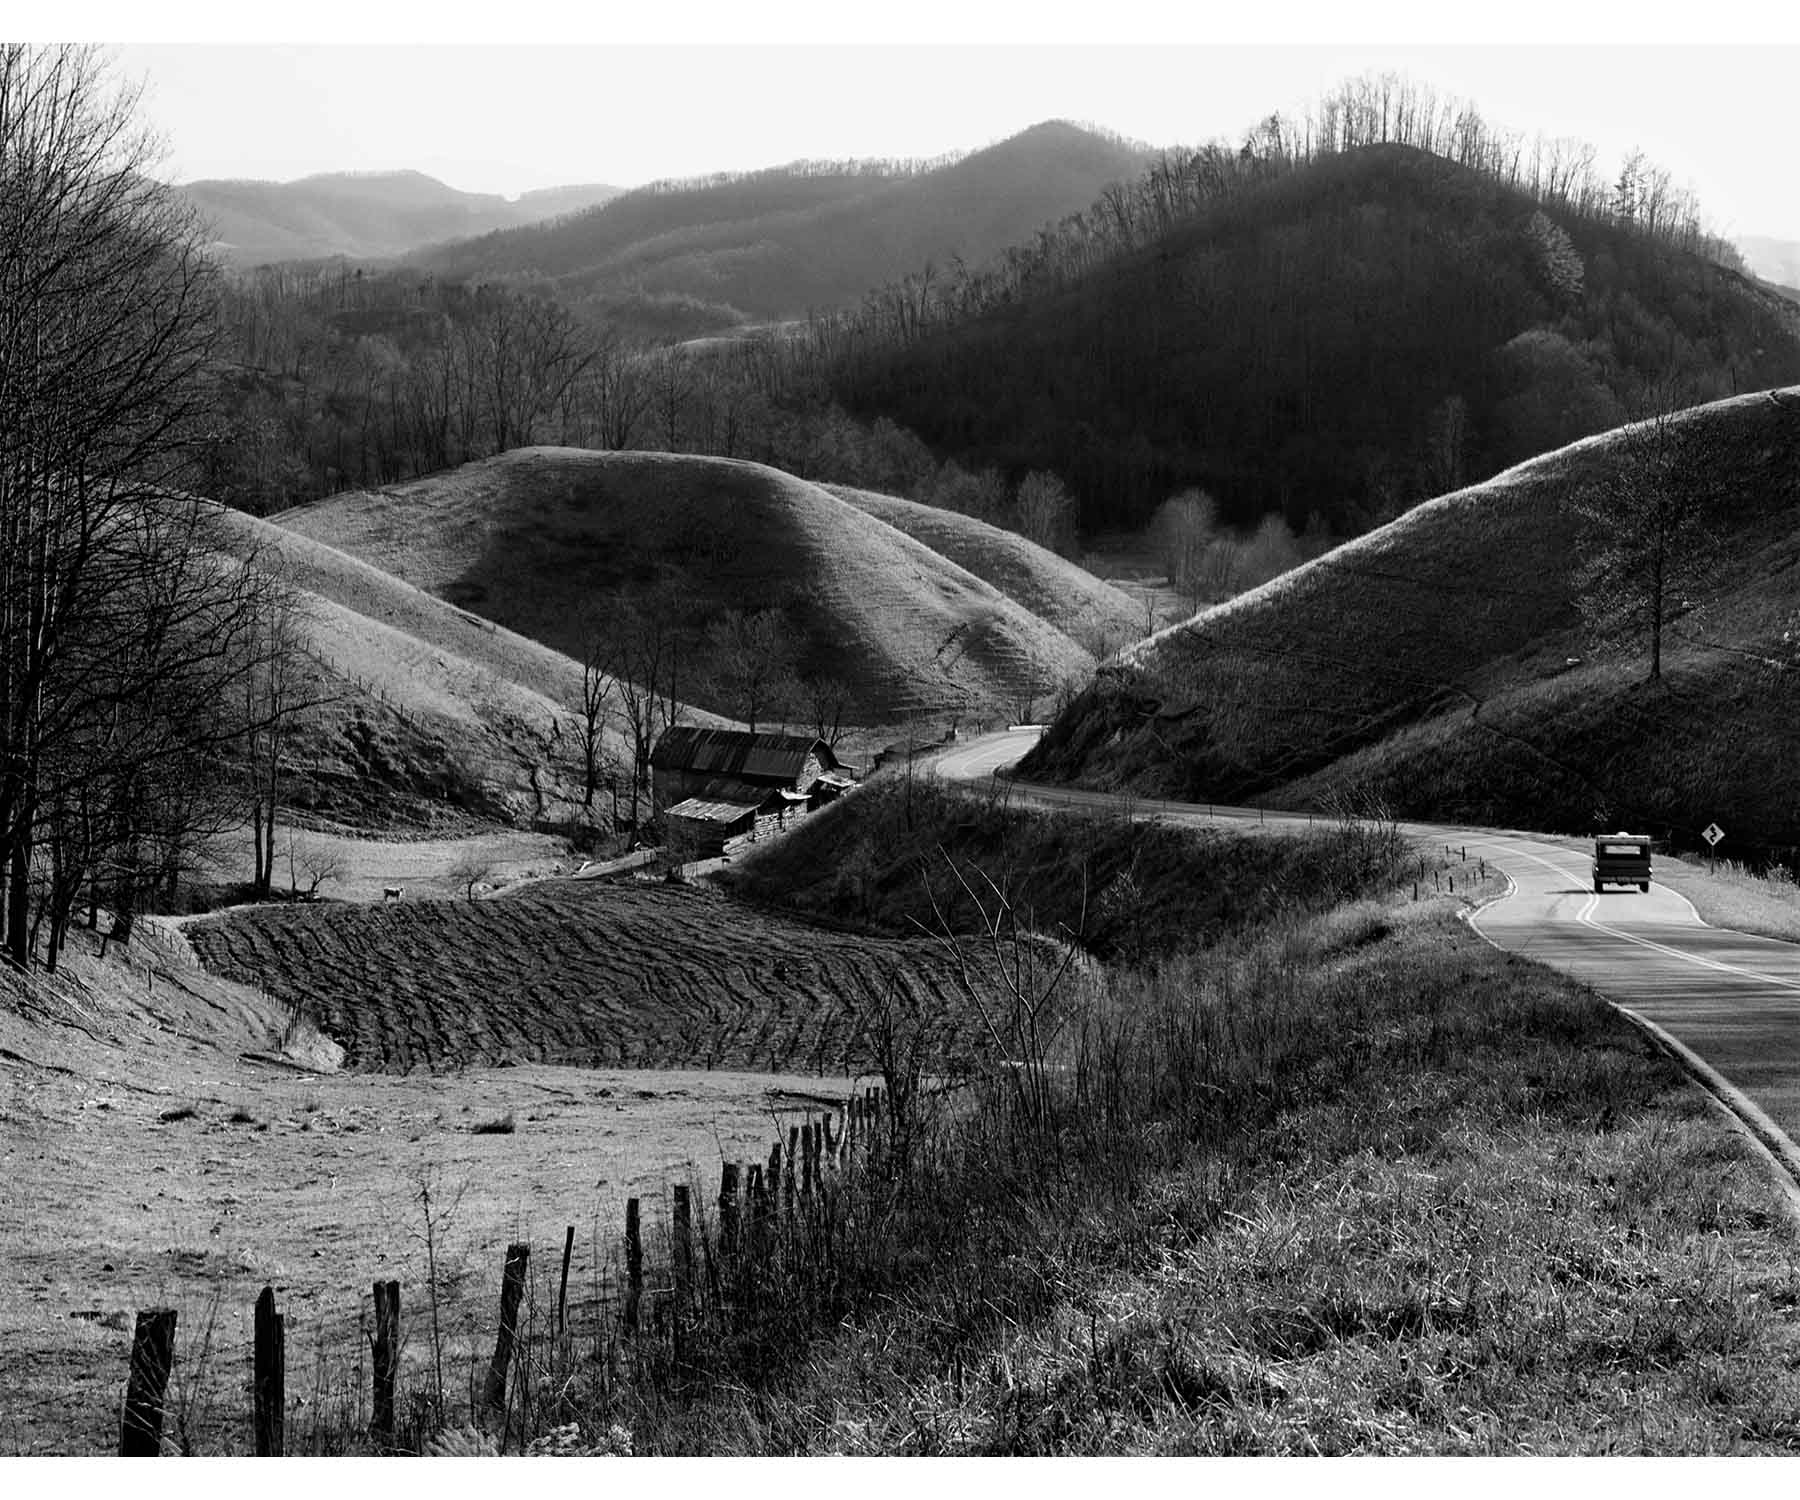 Rolling Hills and truck Madison County NC Appalachia Appalachian Tim Barnwell photography